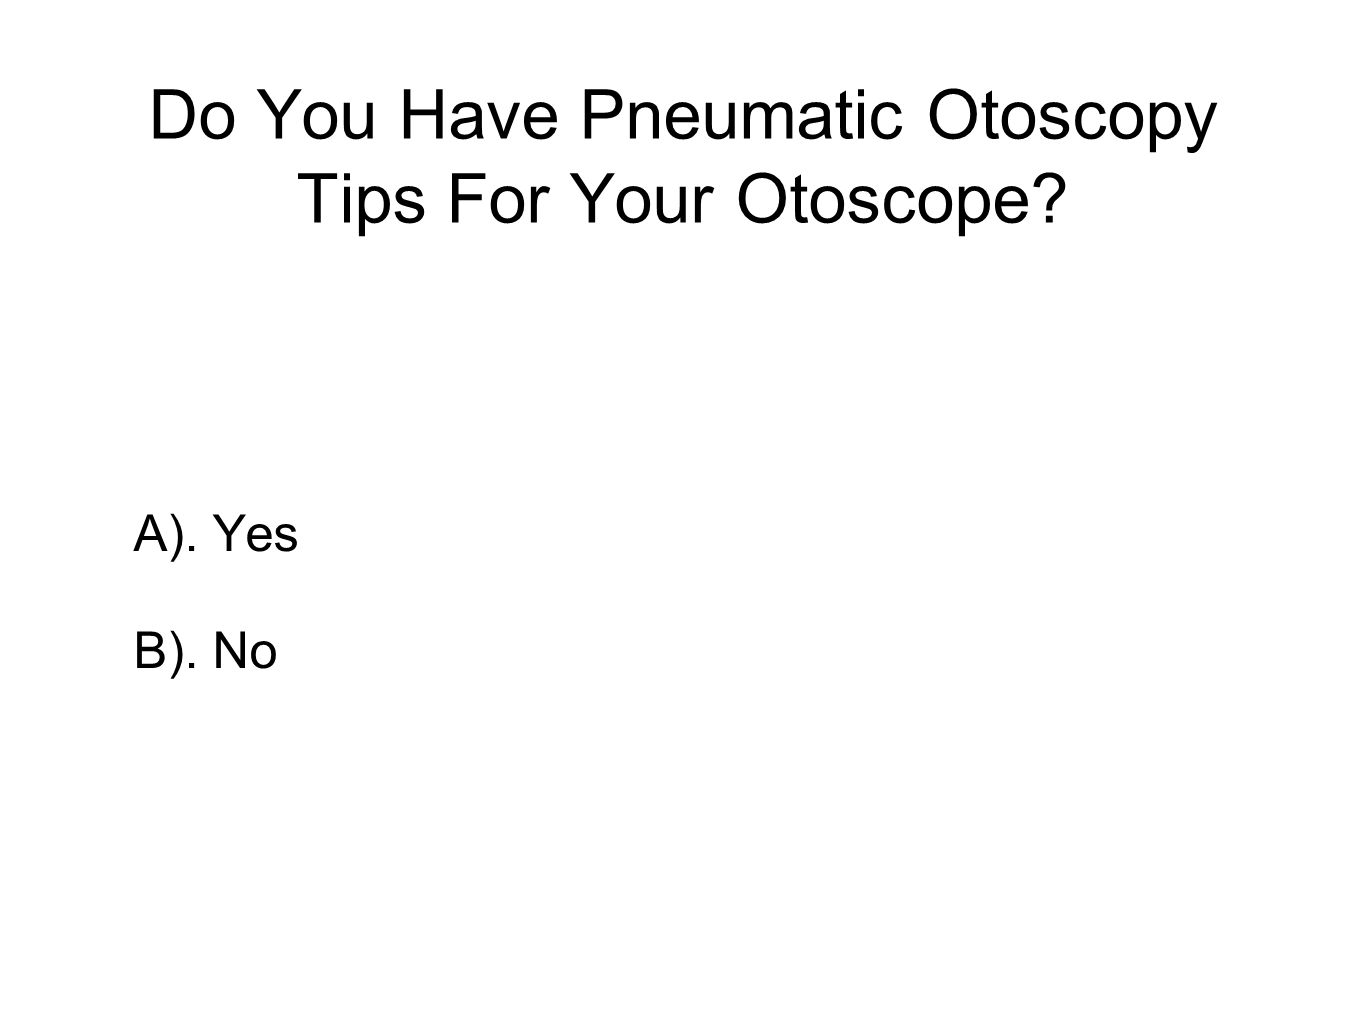 Do You Have Pneumatic Otoscopy Tips For Your Otoscope? A). Yes B). No